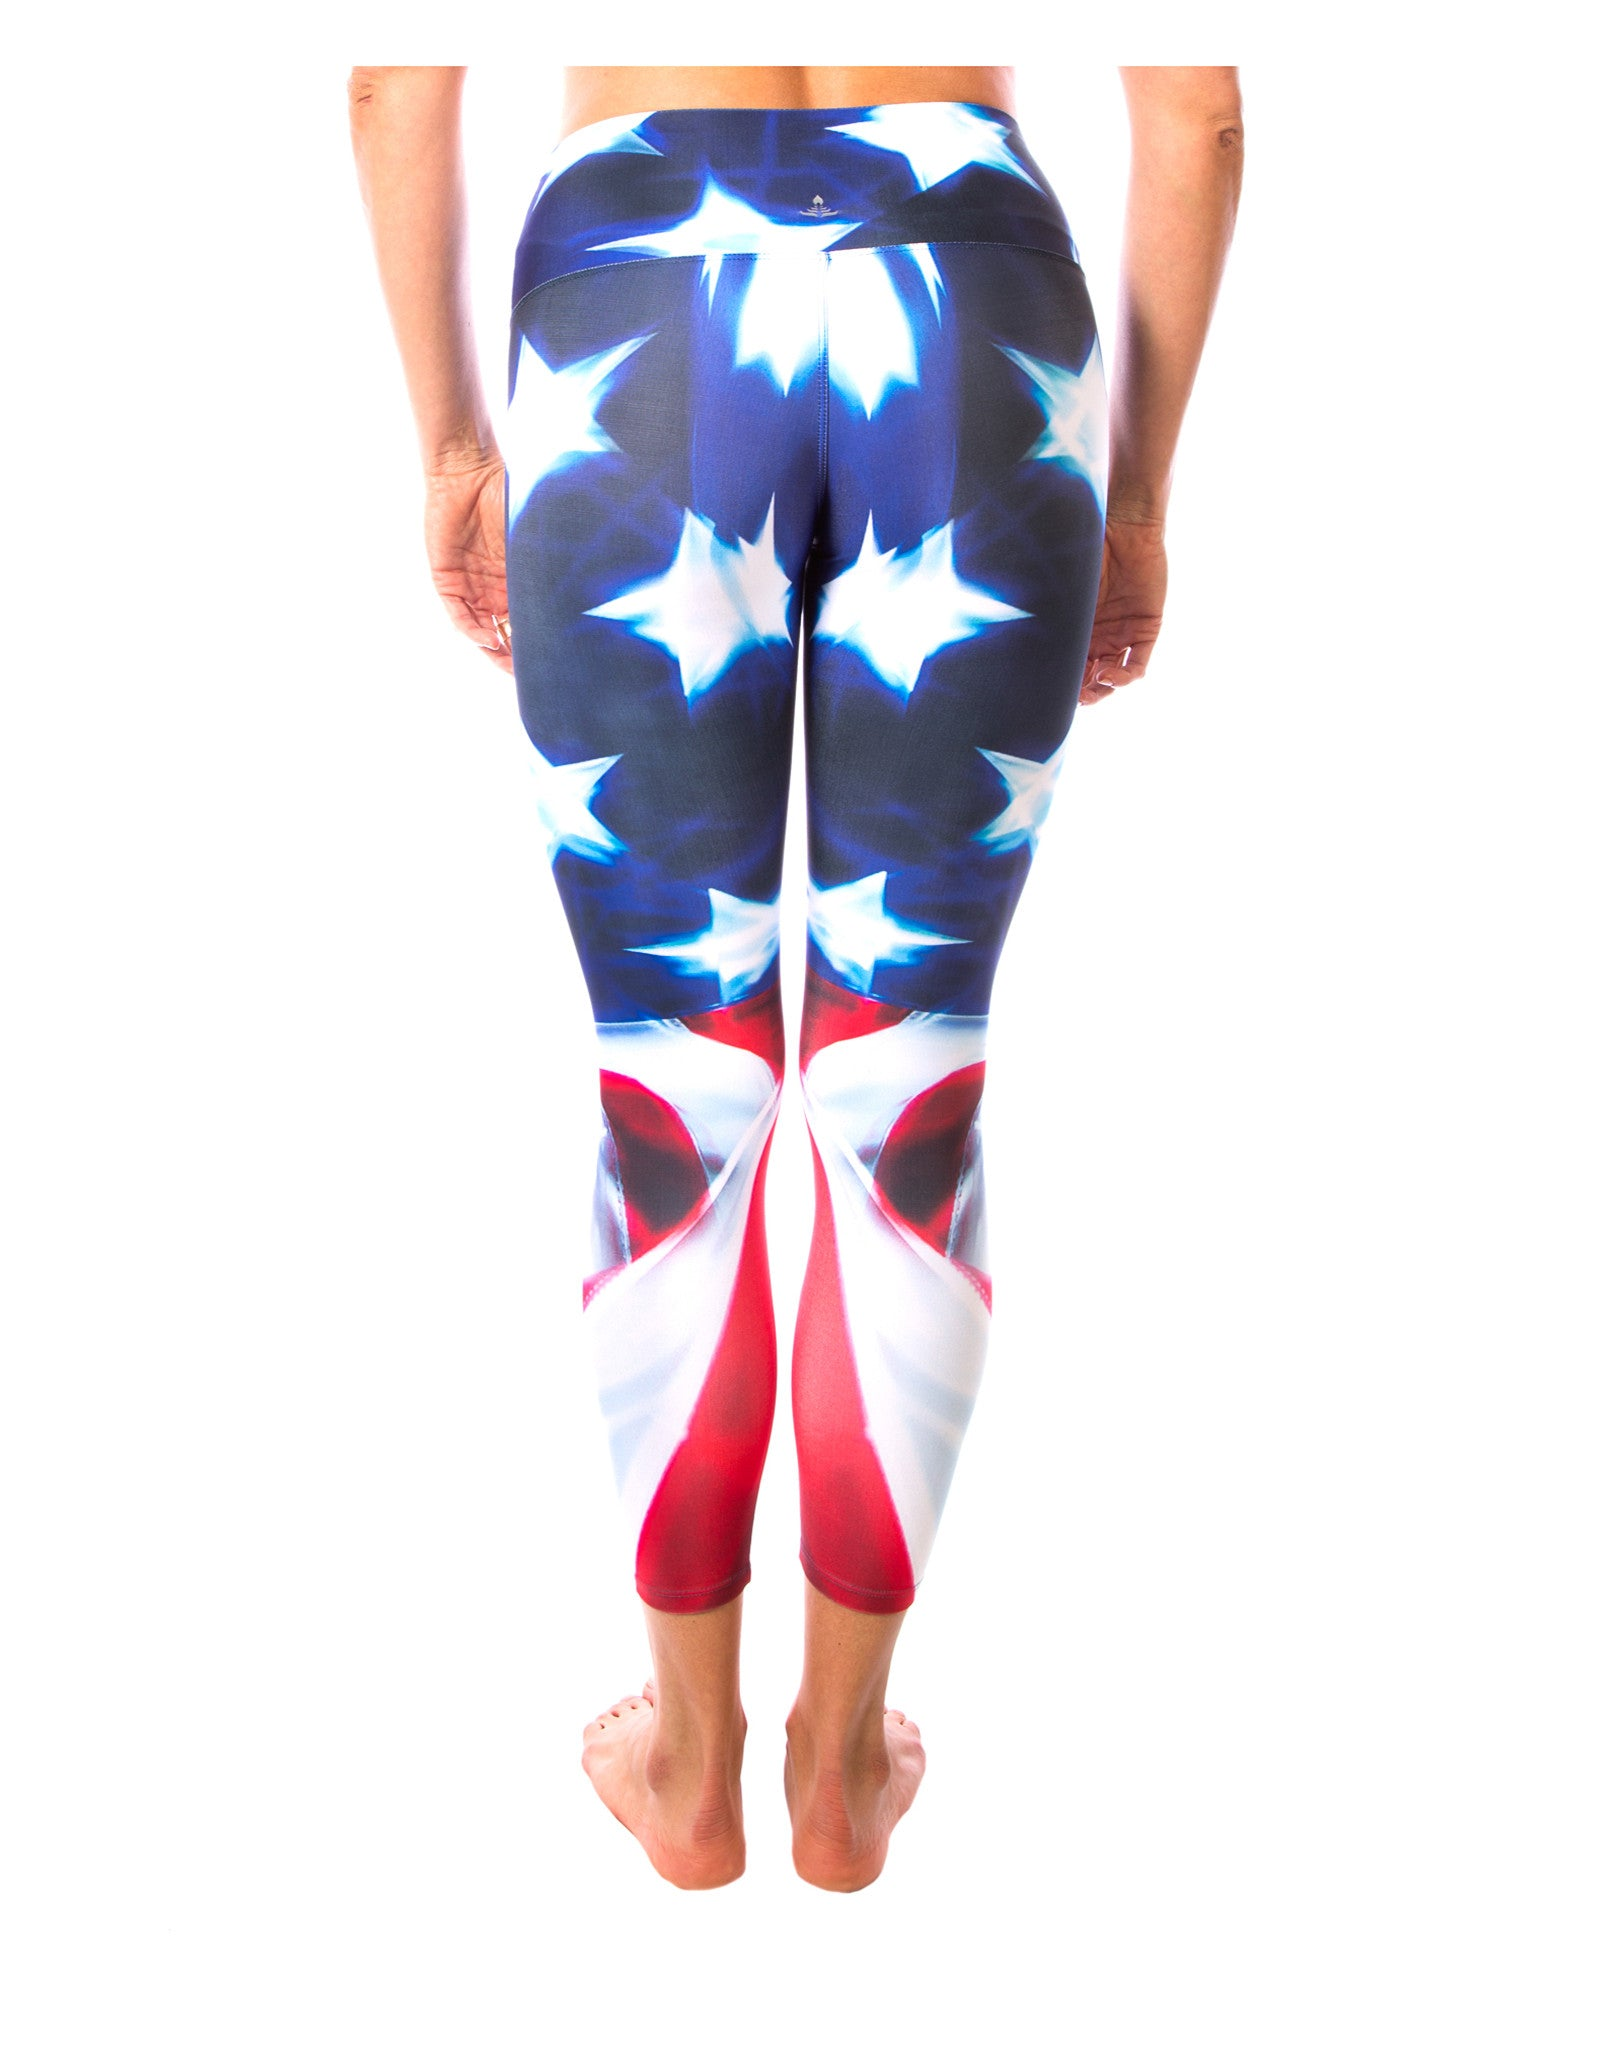 a23418b33d15f ... Patriotic Yoga Pants- American Flag One Legging from the Patriotic Me  LavaLoka Yoga Pants Collection ...